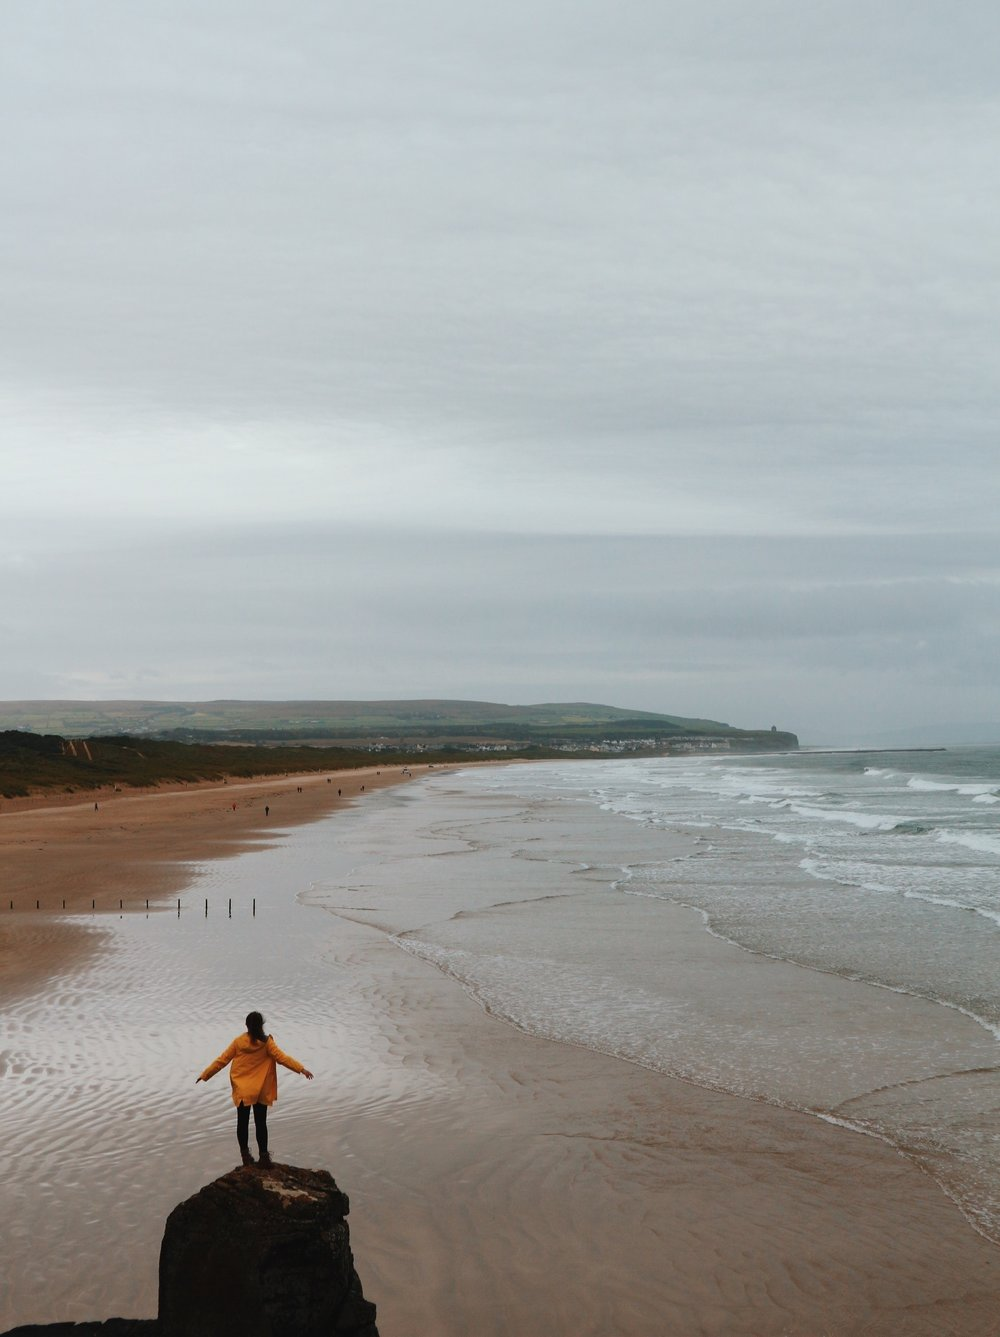 AUTUMN DAYON THENORTH COAST -